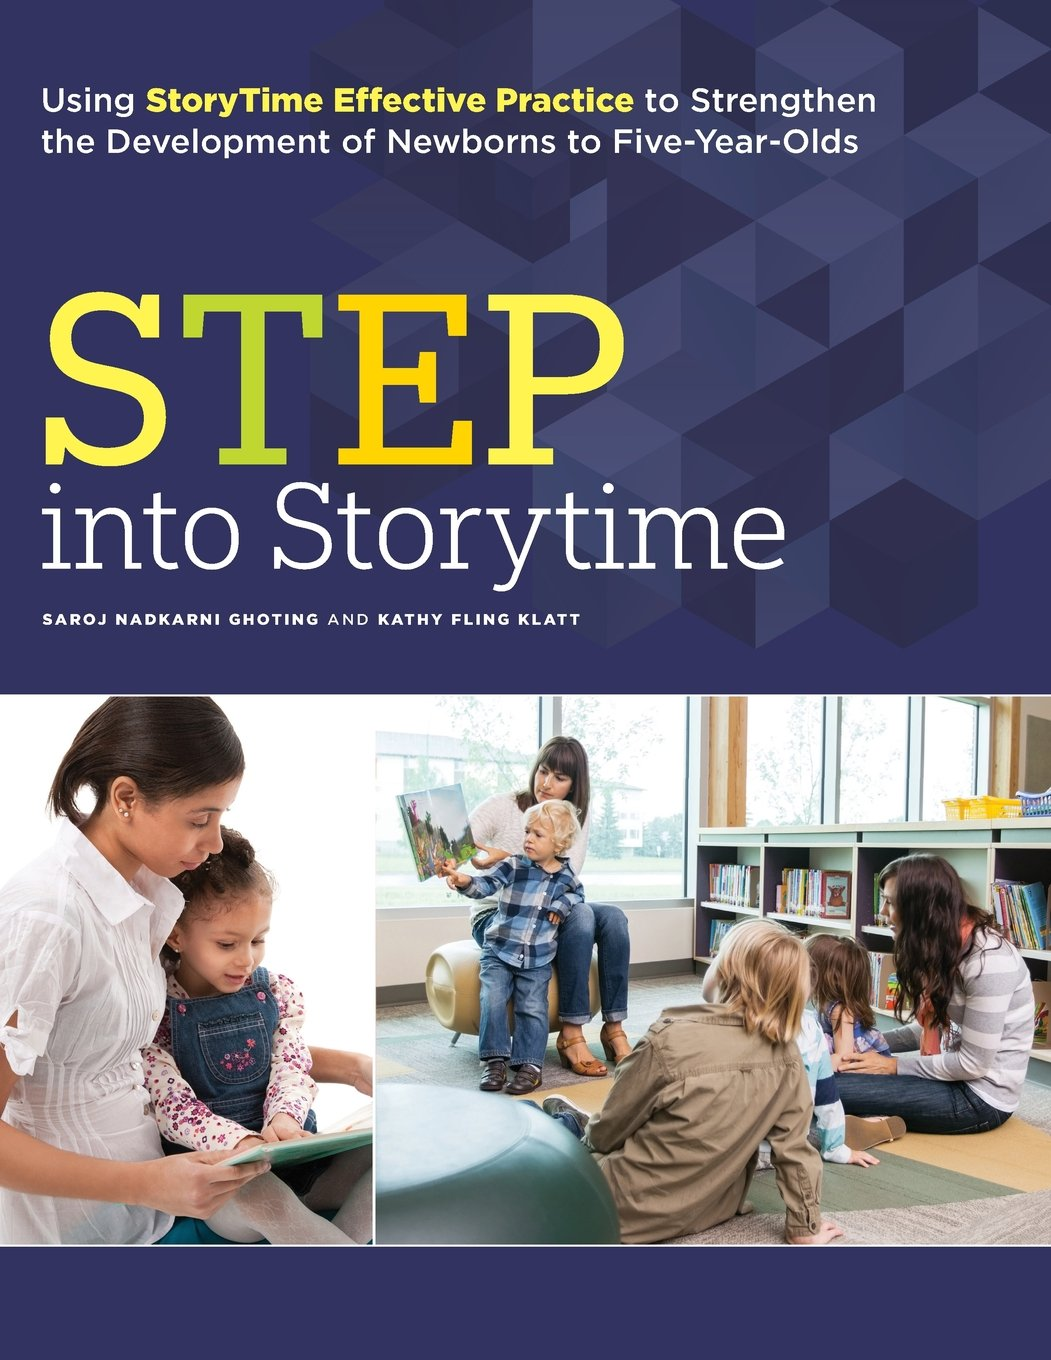 STEP into Storytime: Using StoryTime Effective Practice to Strengthen the Development of Newborns to Five-Year-Olds by Amer Library Assn Editions